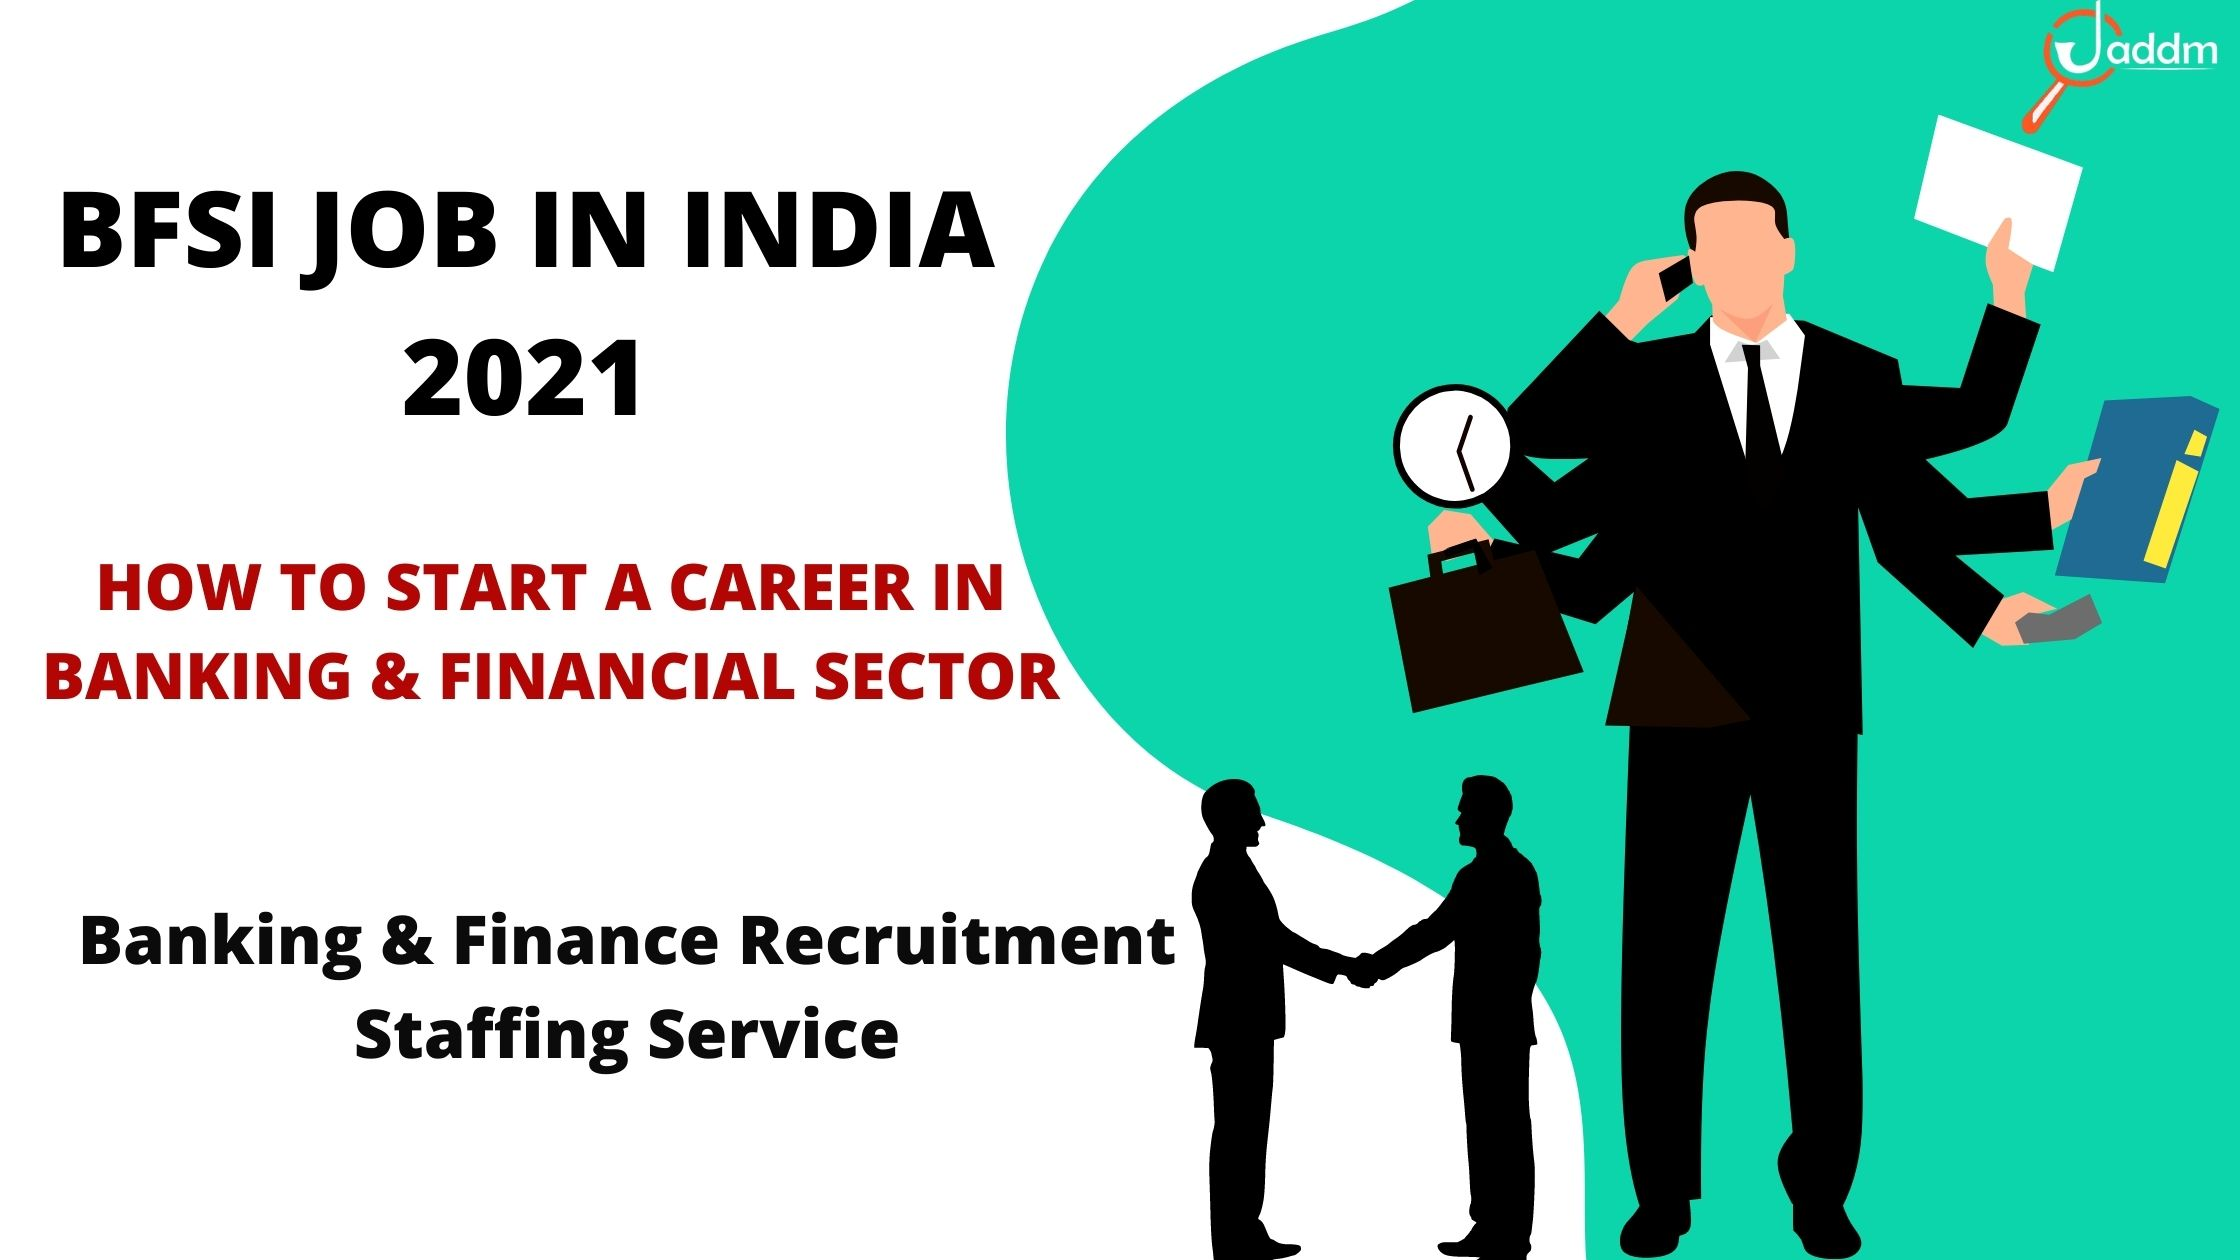 Bfsi Jobs in India, Latest Job Opening & Job search online